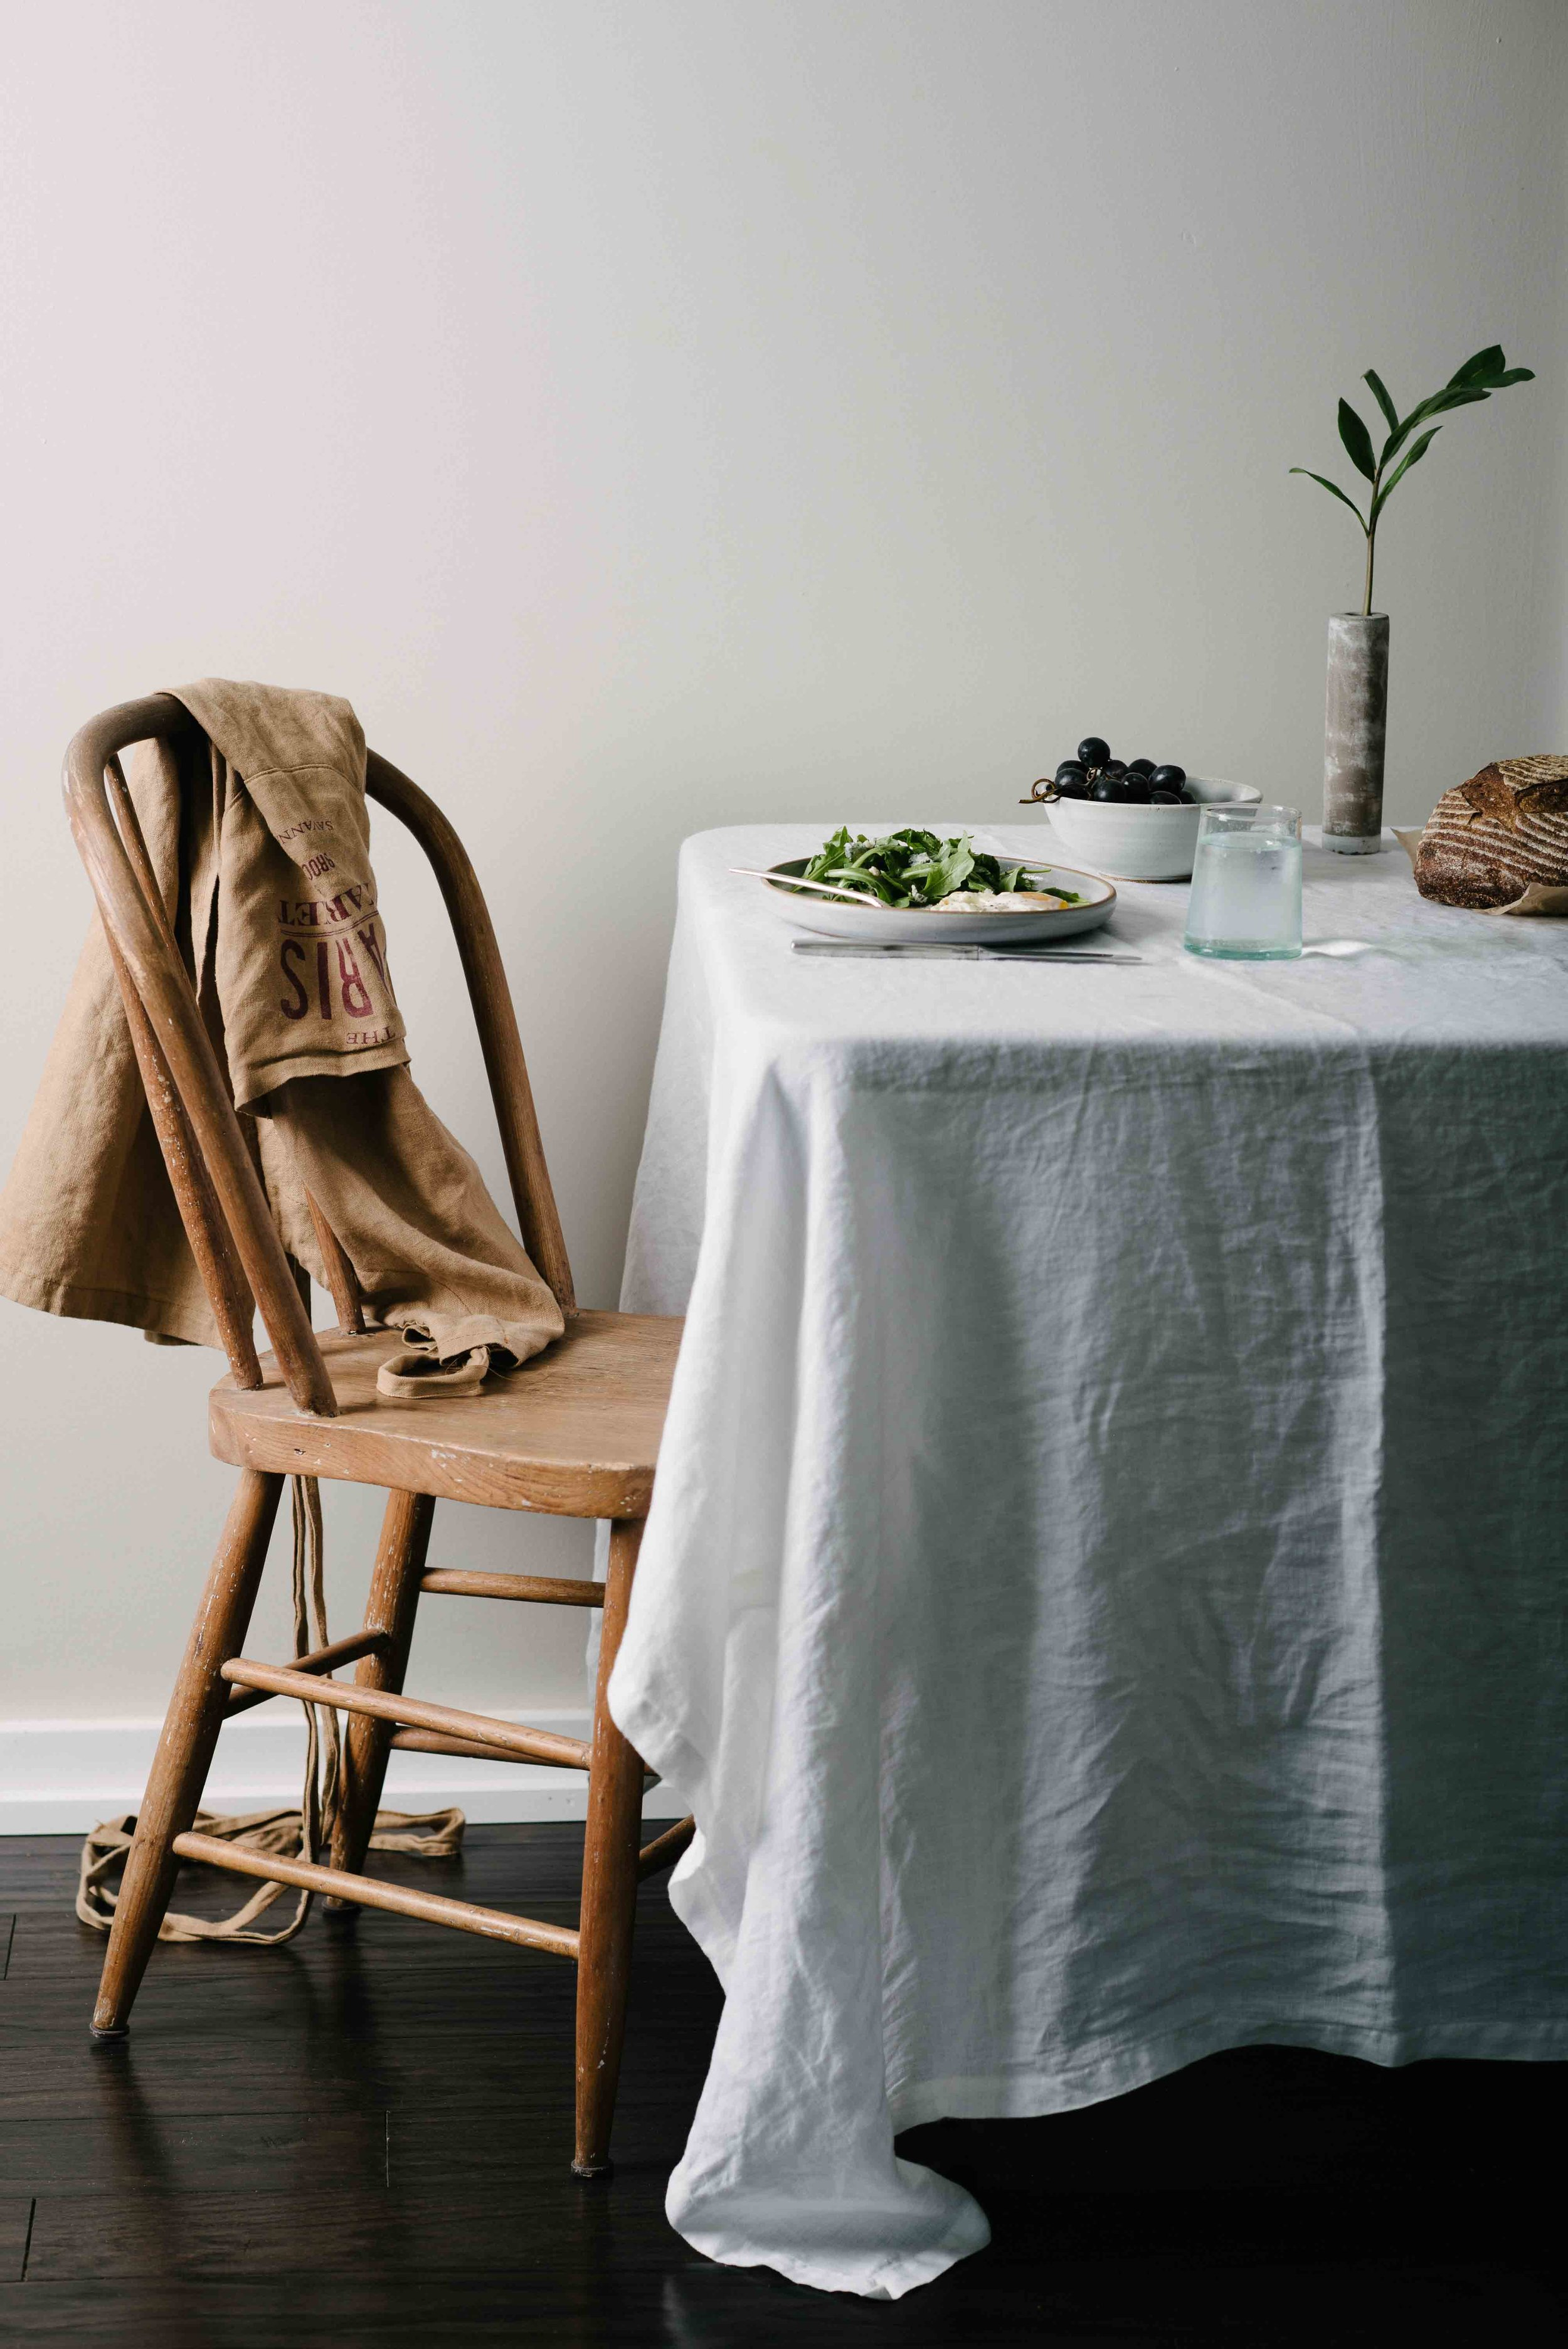 White Linen Covered Breakfast Table with Wooden Chair with Fried Egg, Salad, Grapes, and Bread